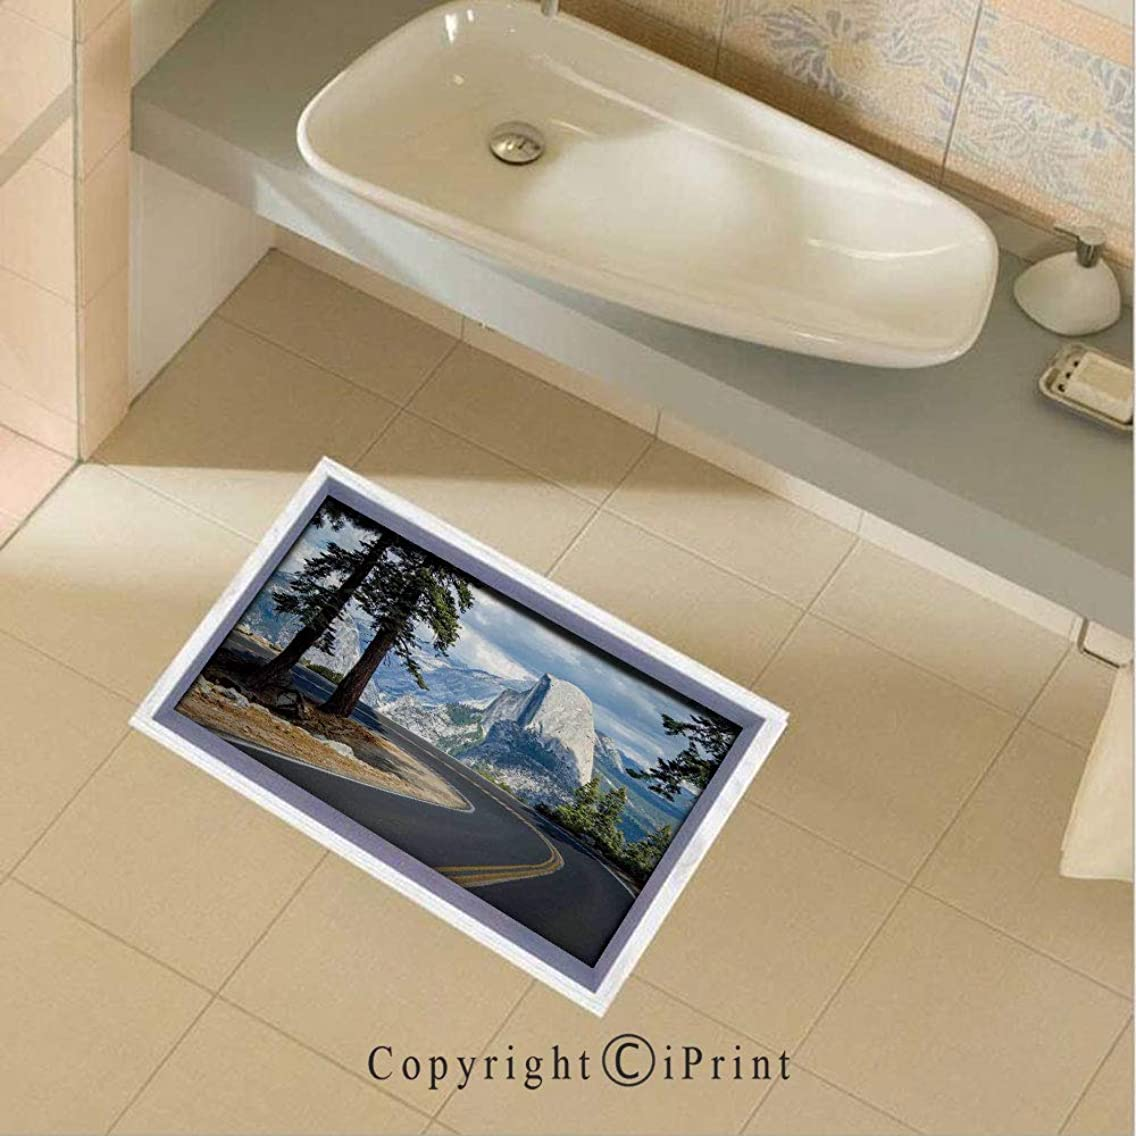 Removable DIY Floor Stickers Decor Stunning Landscape Picture of a Winding Road in the Yosemite Mountains With El Capitan for Home Walls Floor Ceiling Kids Nursery Room Boy Girls Bedroom Bathroom Liv